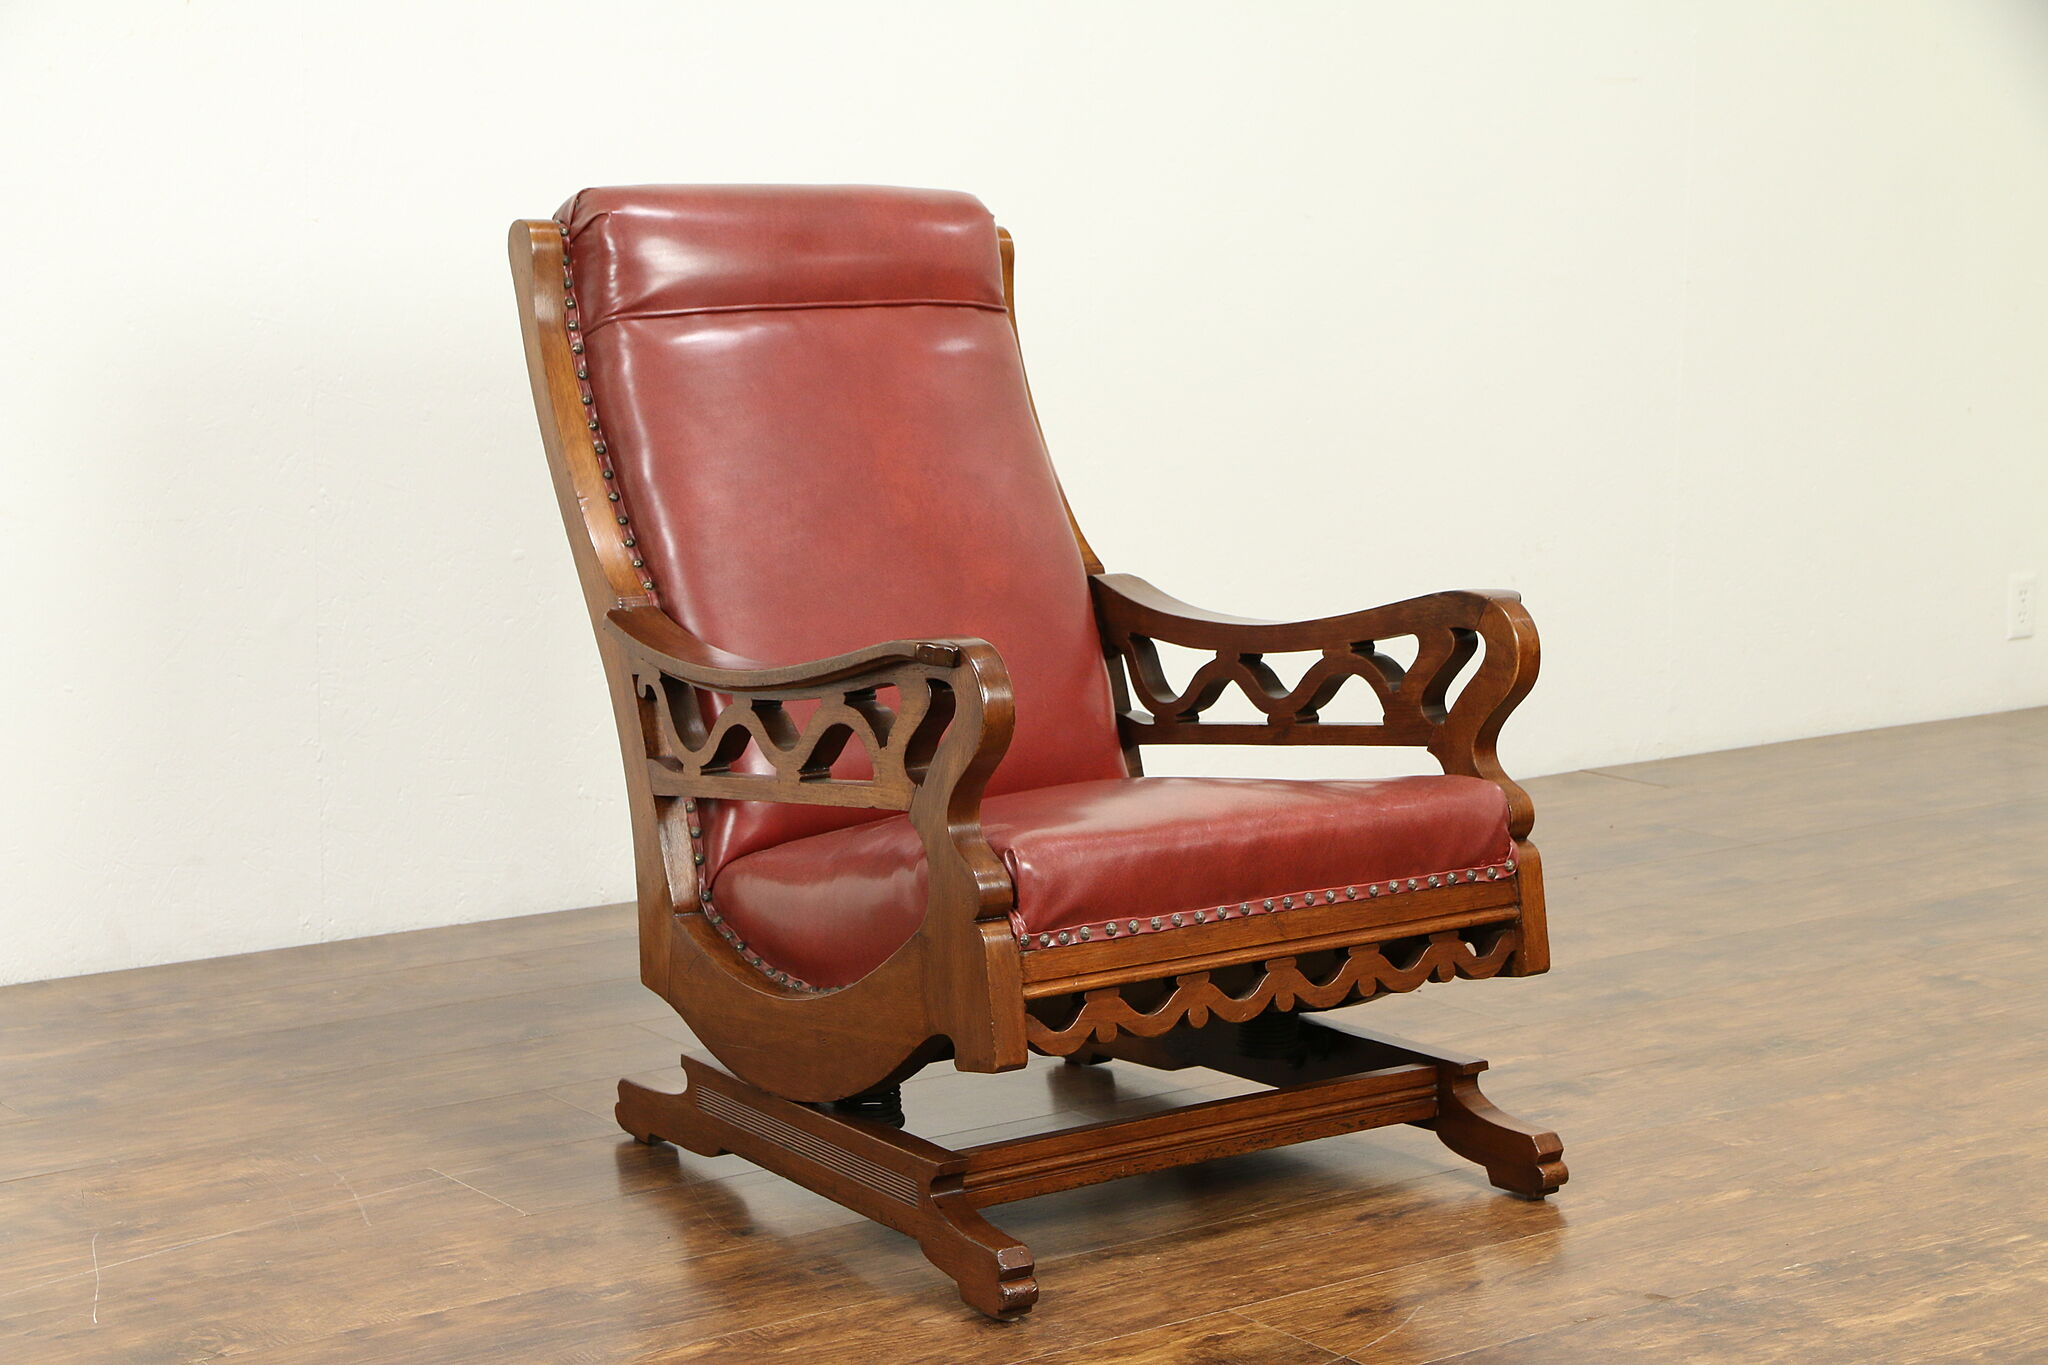 Antique Walnut Platform Rocking Chair